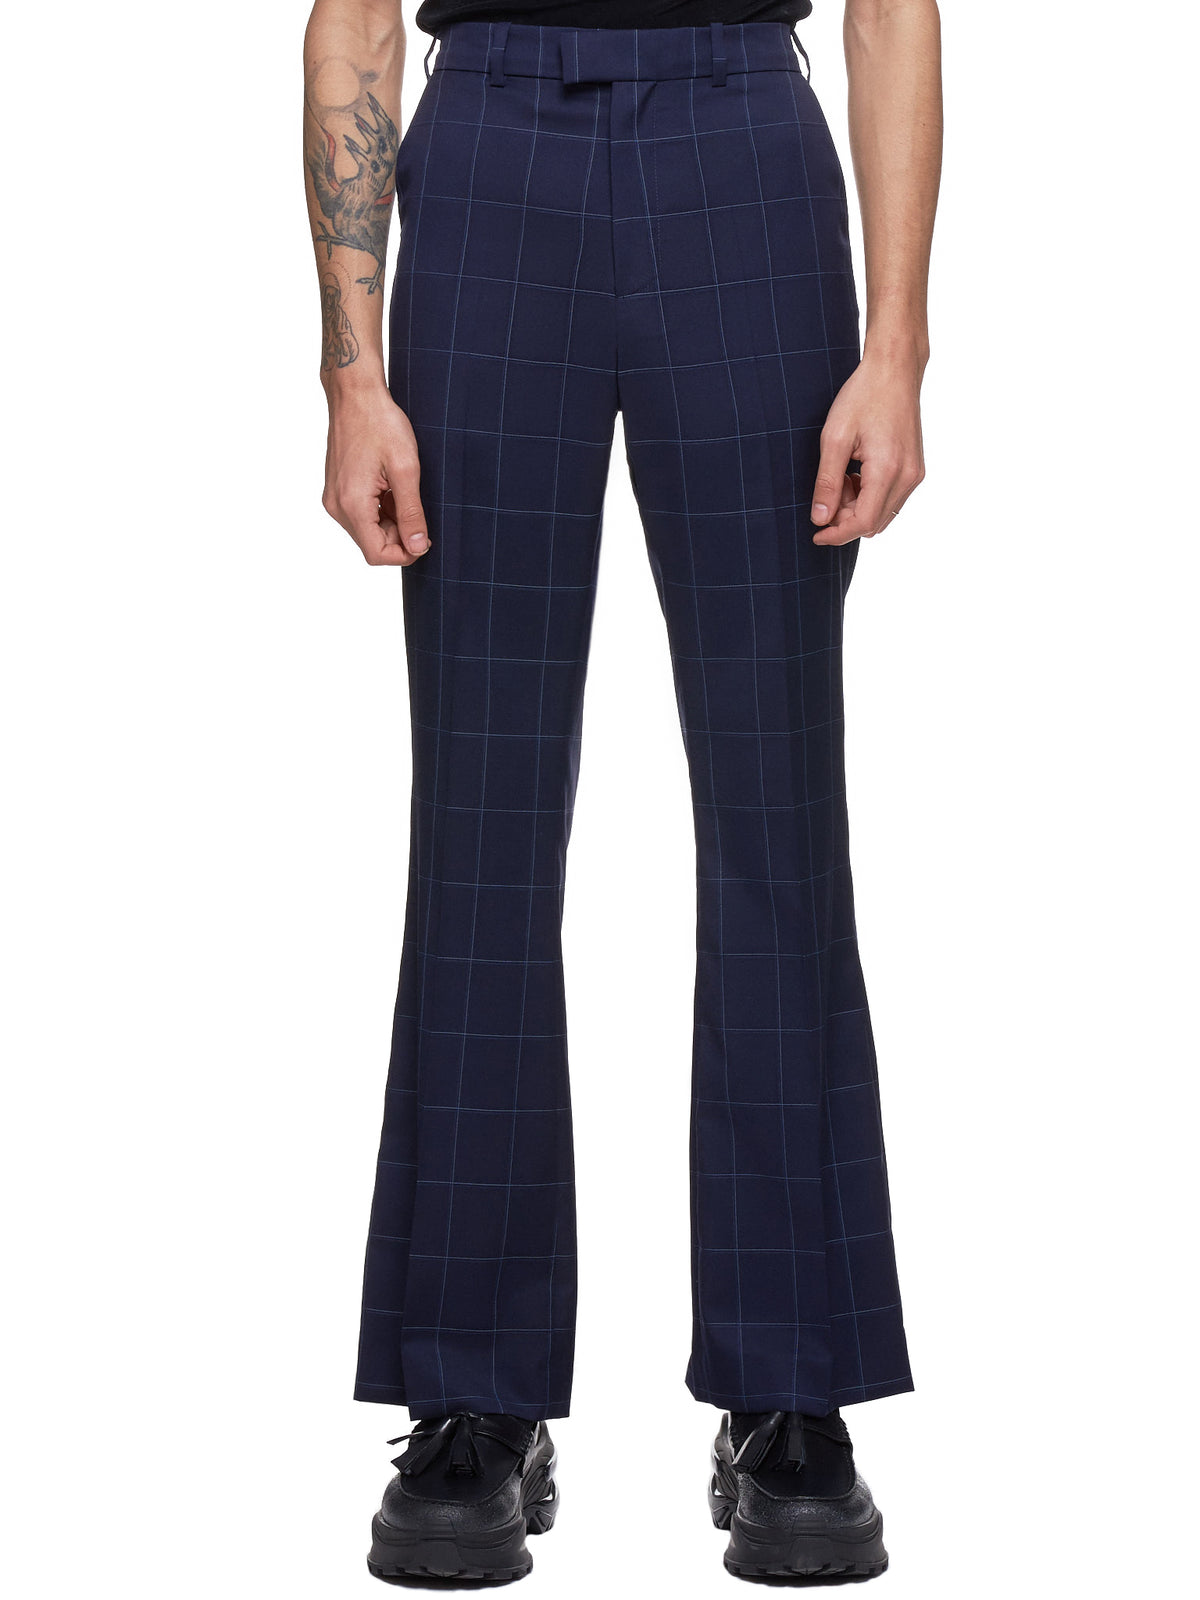 Checkered Trousers (326-BIG-NAVY-CHECK)